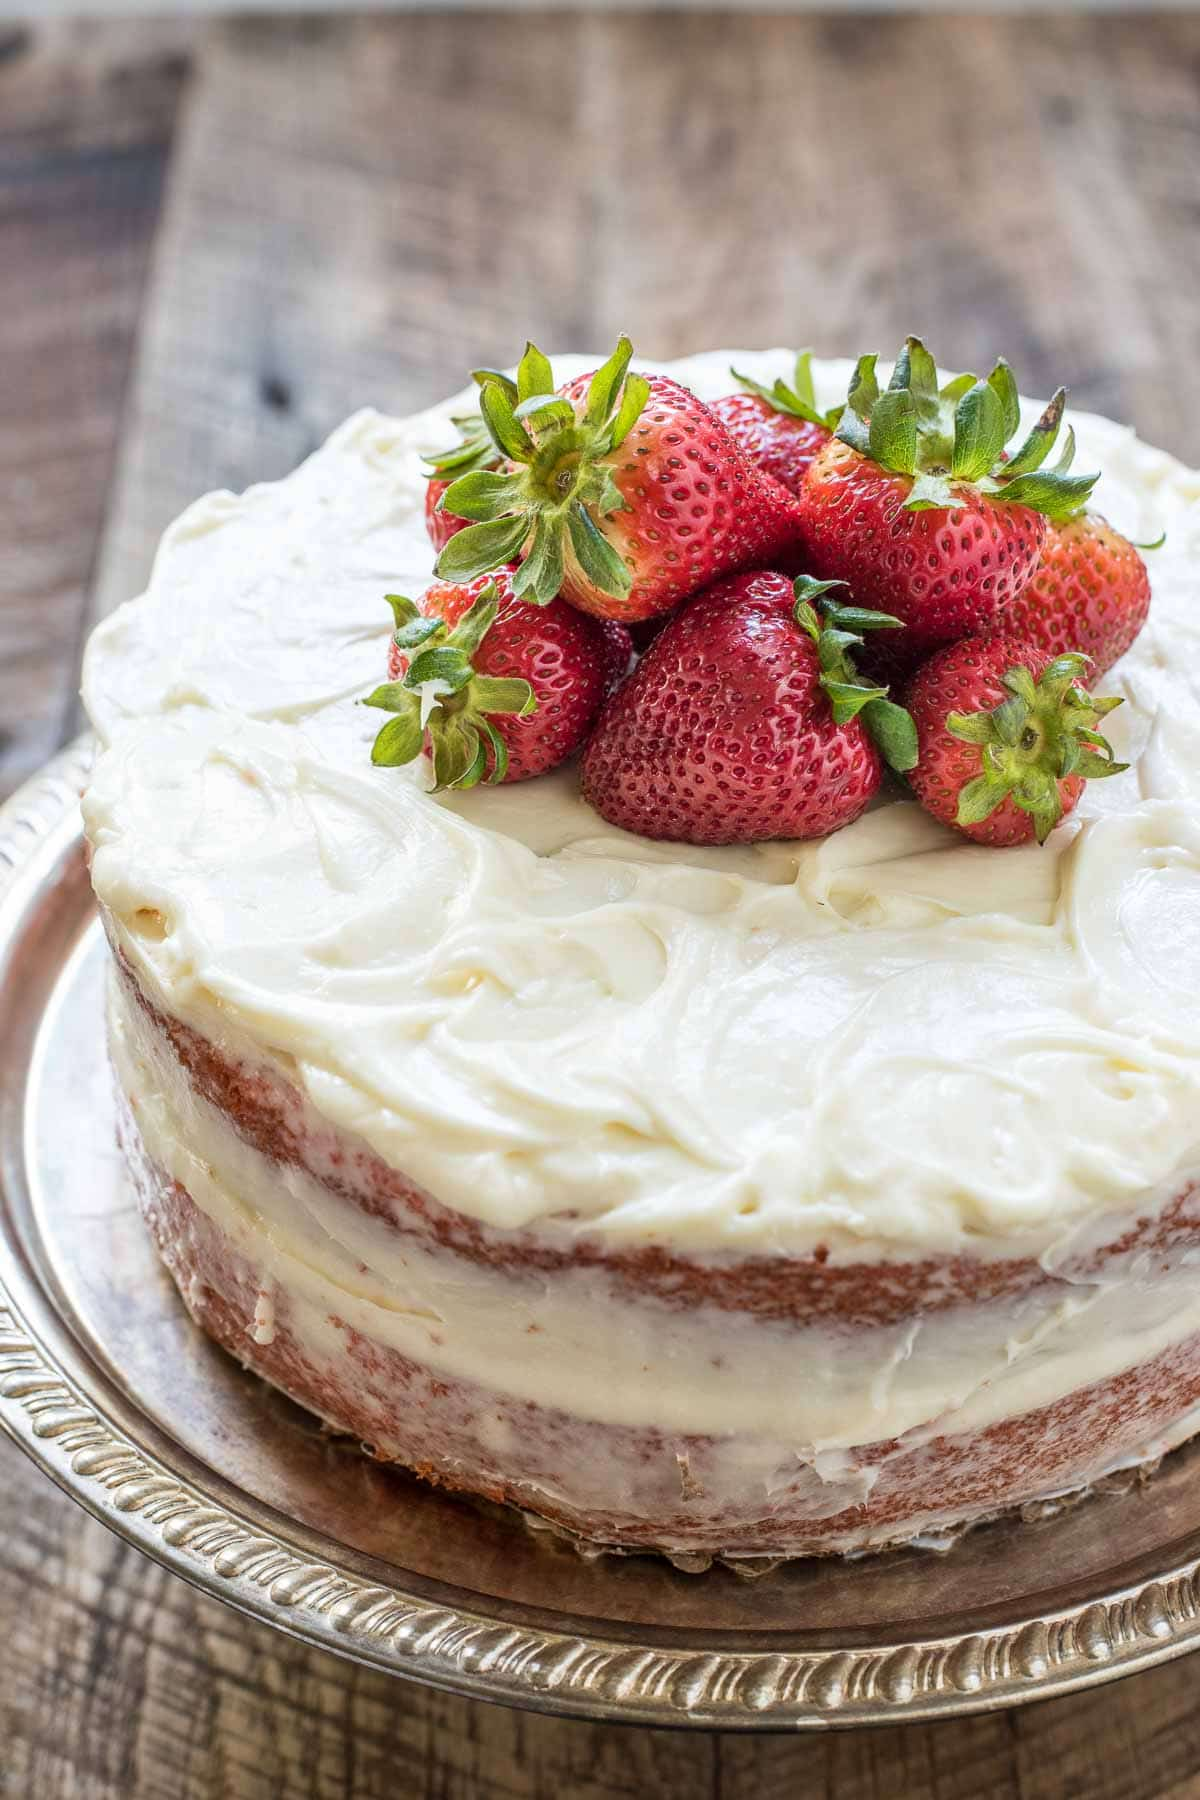 Easy strawberry cake with cream cheese frosting and fresh strawberries on top